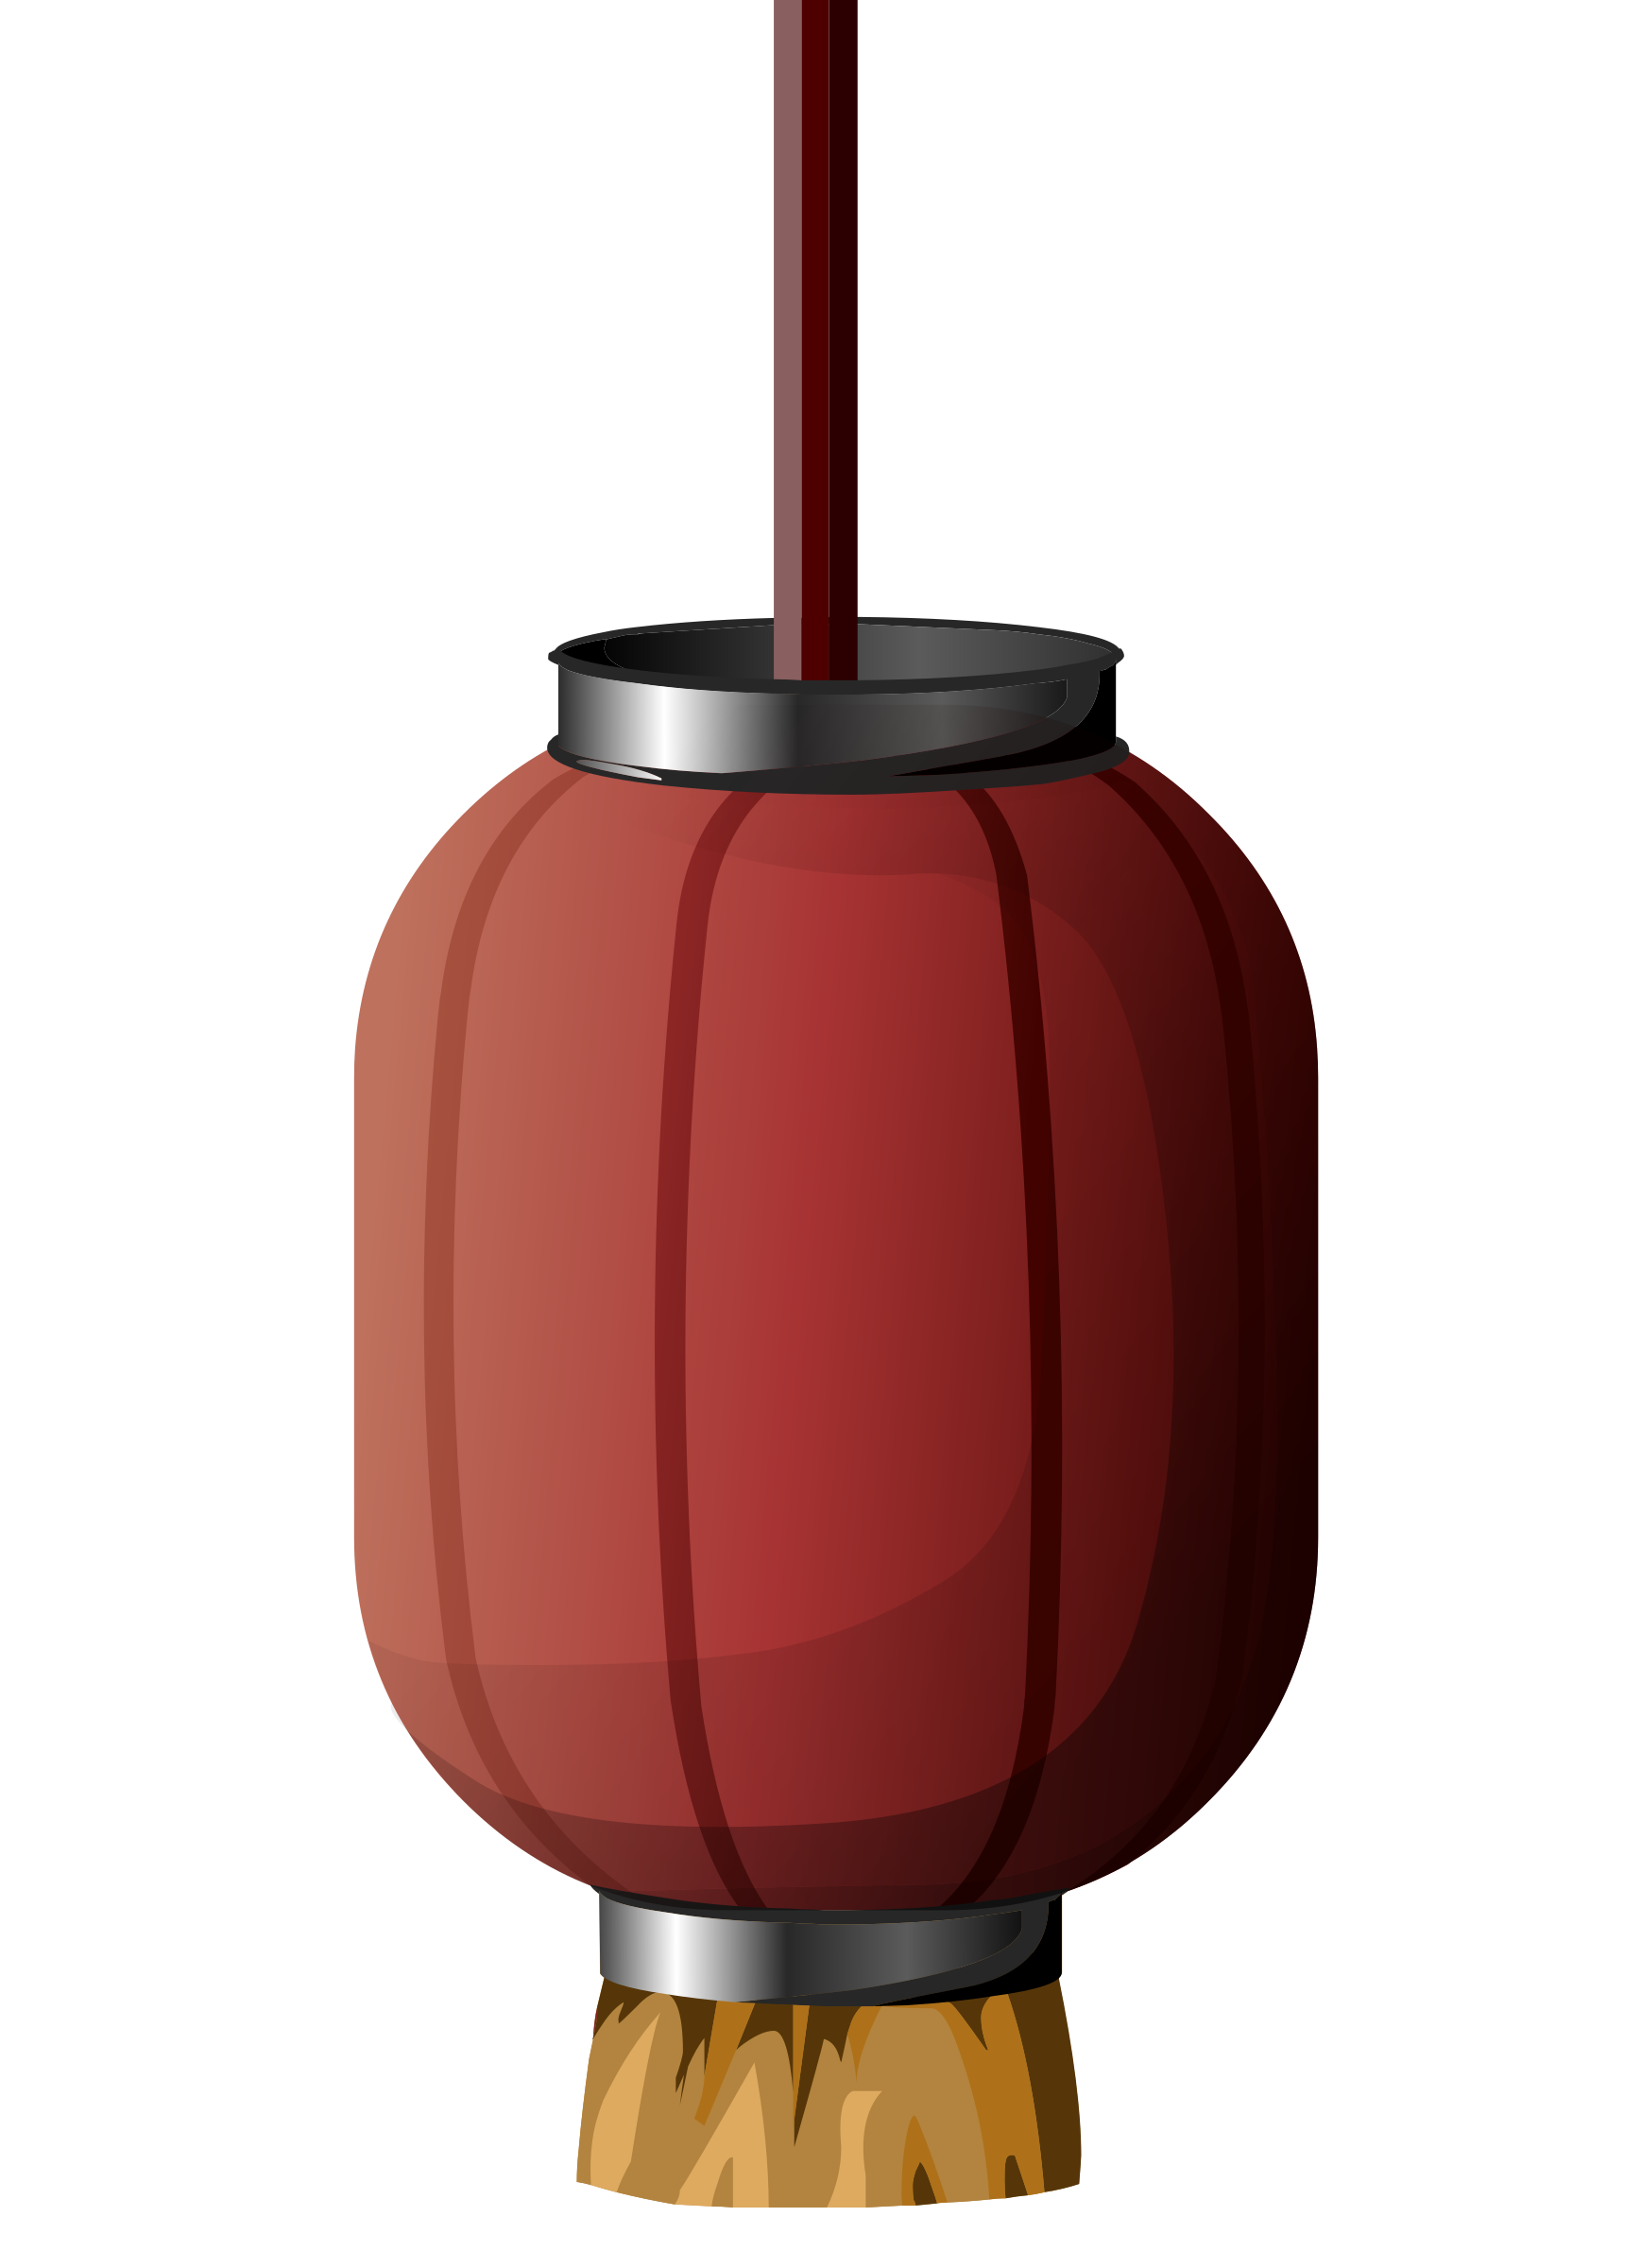 Japanese clipart red lantern. Paper big image png